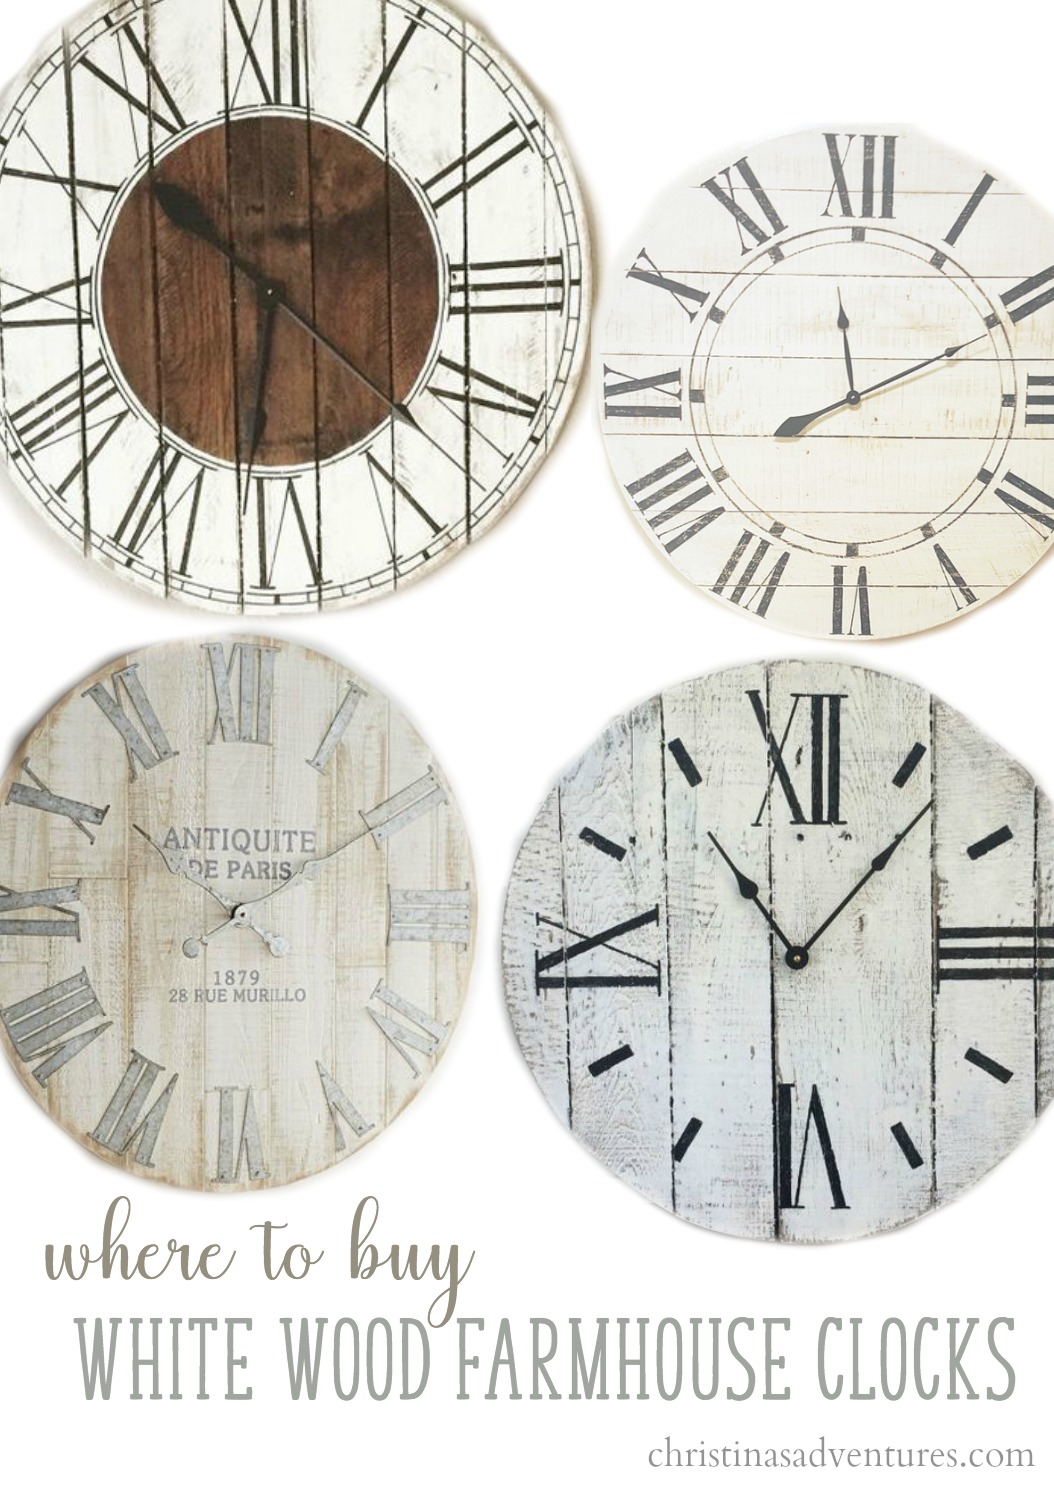 Fashionable Where To Buy Wood Farmhouse Wall Clocks From Where To Buy Farmhouse Wall Clocks Christinas Adventures Buy Wall Clocks Ebay Buy Wall Clocks At Argos furniture Affordable Wall Clocks